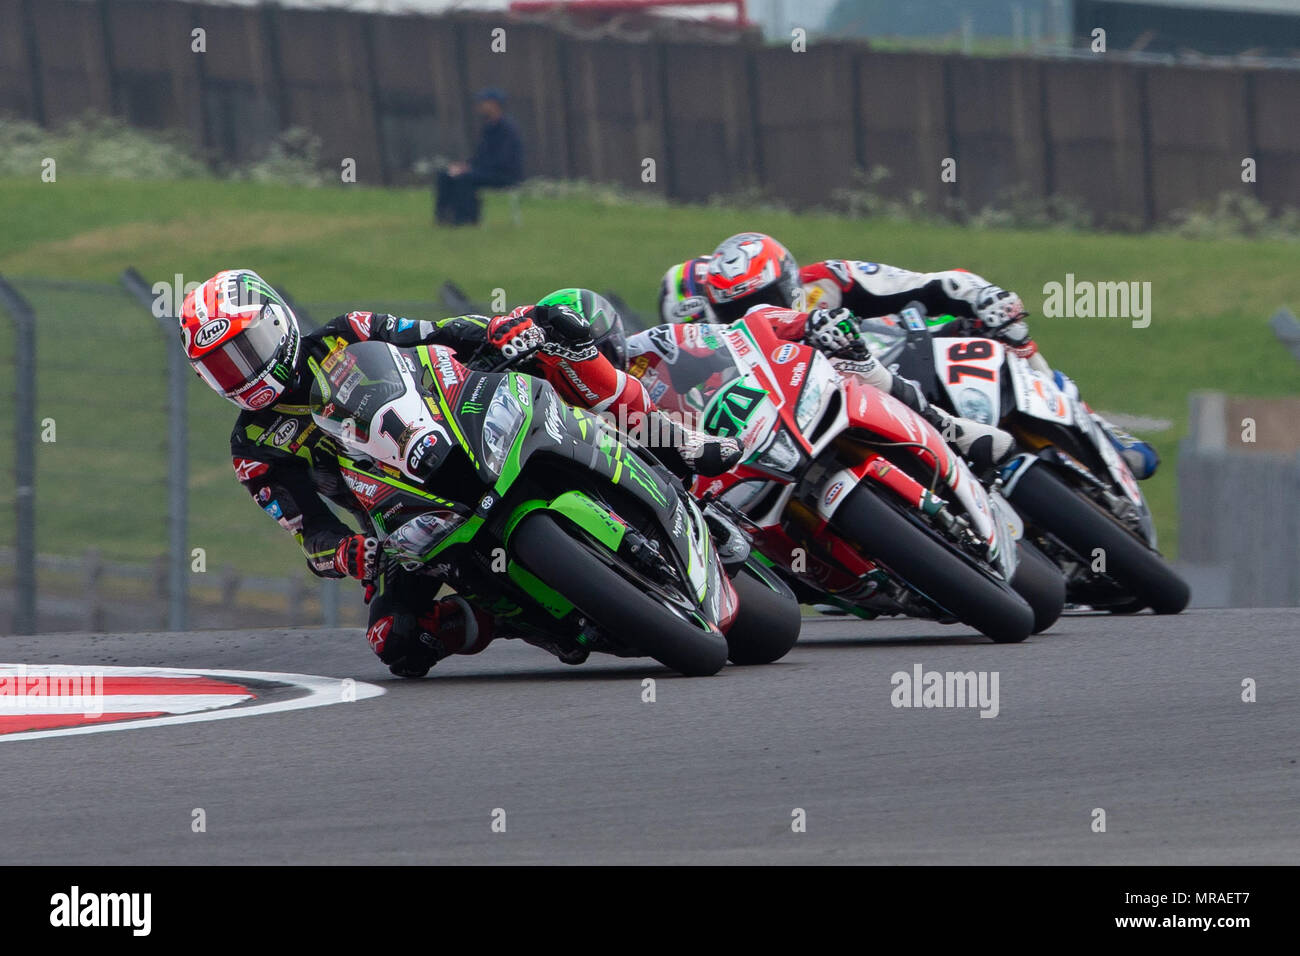 Donington Park Circuit, Derby, UK. 26th May, 2018. World Superbikes, Prosecco DOC UK Round 6 Qualifying; Jonathan Rea riding a Kawasaki Racing Team WorldSBK Kawasaki ZX-10RR ahead of Eugene Laverty riding a Milwaukee Aprilia RSV4 and Loris Baz riding a Gulf Althea BMW Racing Team BMW S 1000 RR Credit: Action Plus Sports/Alamy Live News Stock Photo